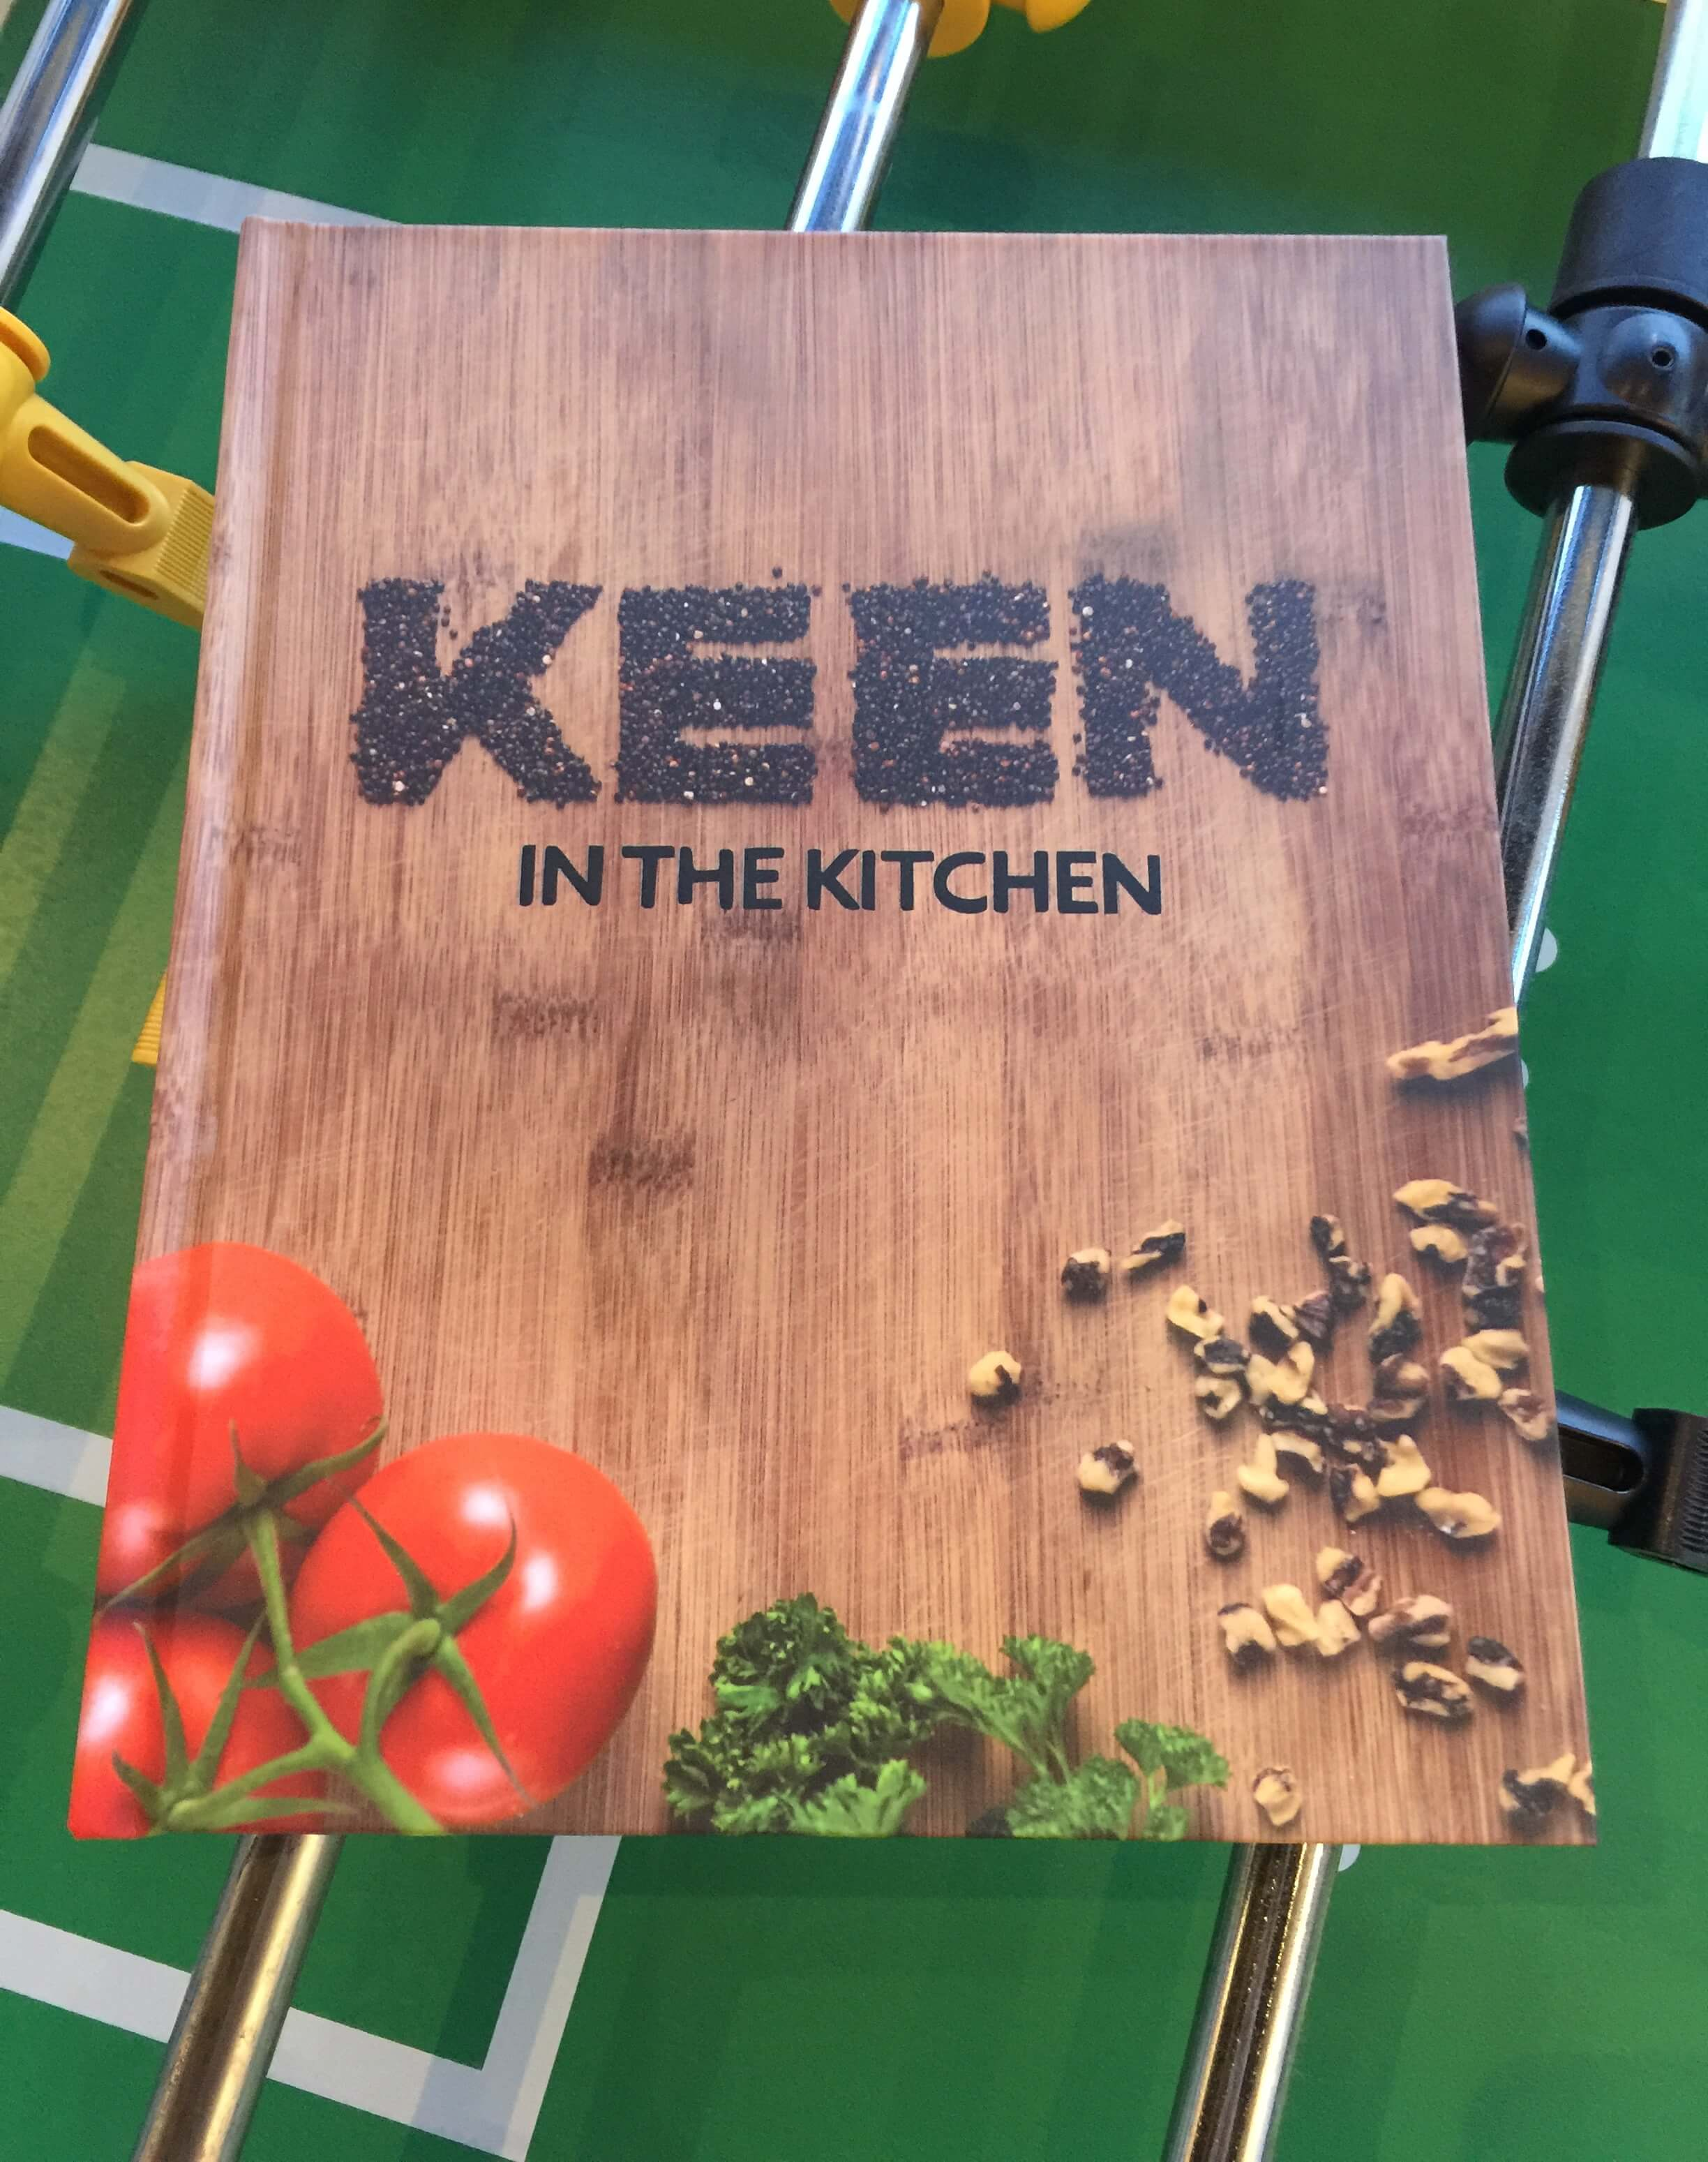 KEEN Cookbook cover